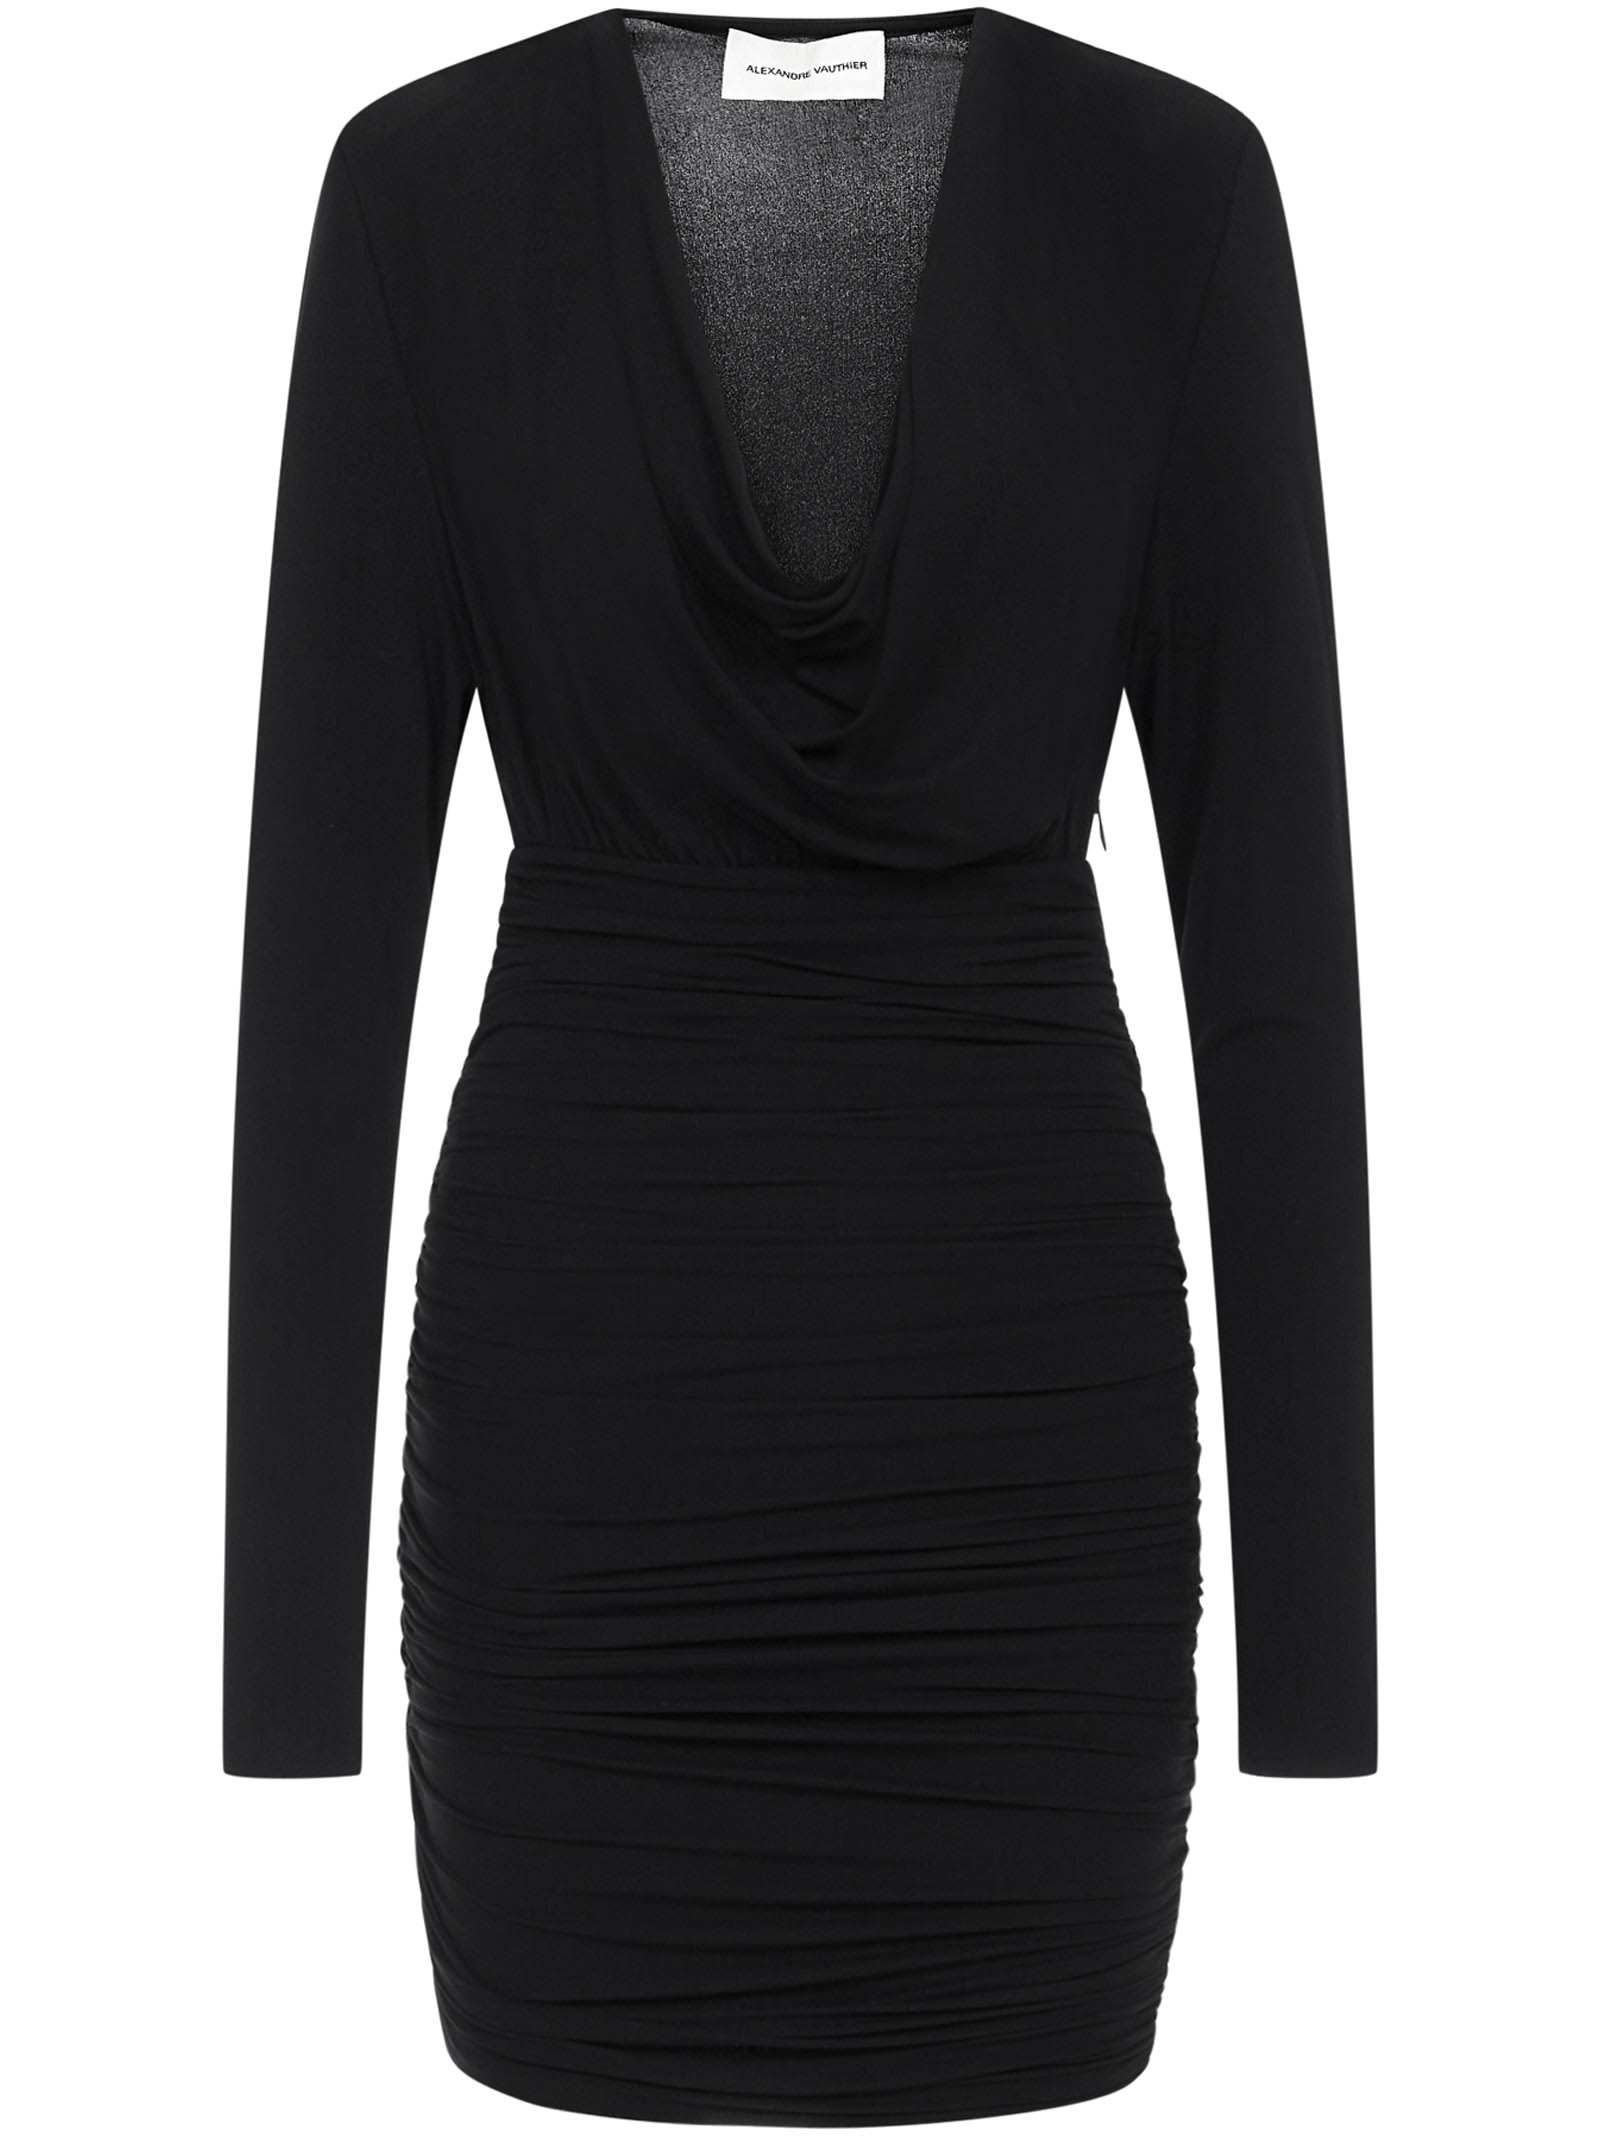 Alexandre Vauthier Mini Dress In Black